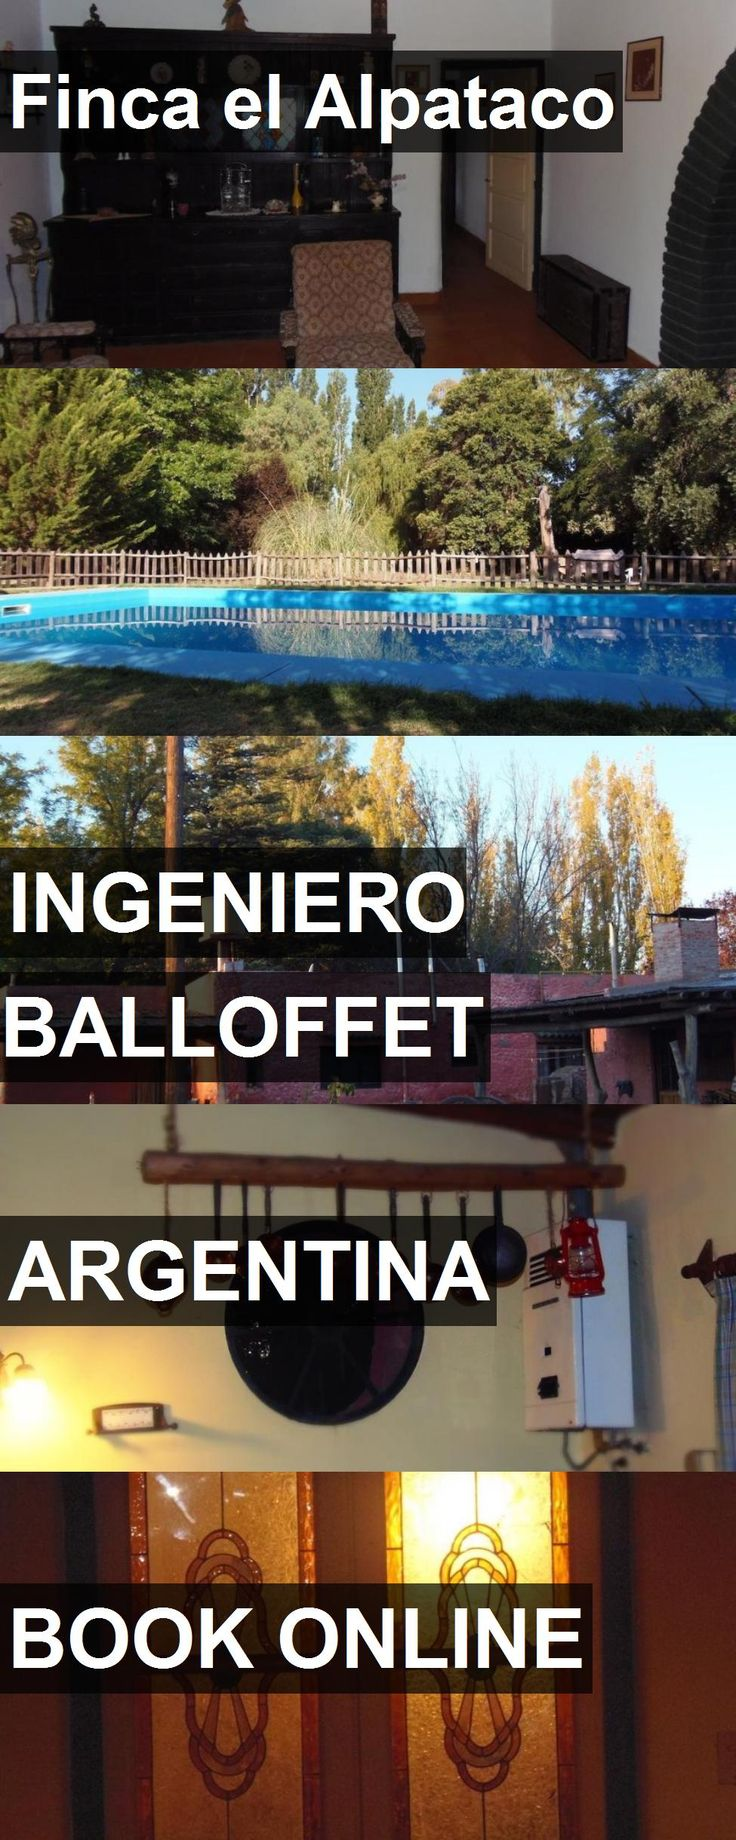 Hotel Finca el Alpataco in Ingeniero Balloffet, Argentina. For more information, photos, reviews and best prices please follow the link. #Argentina #IngenieroBalloffet #travel #vacation #hotel